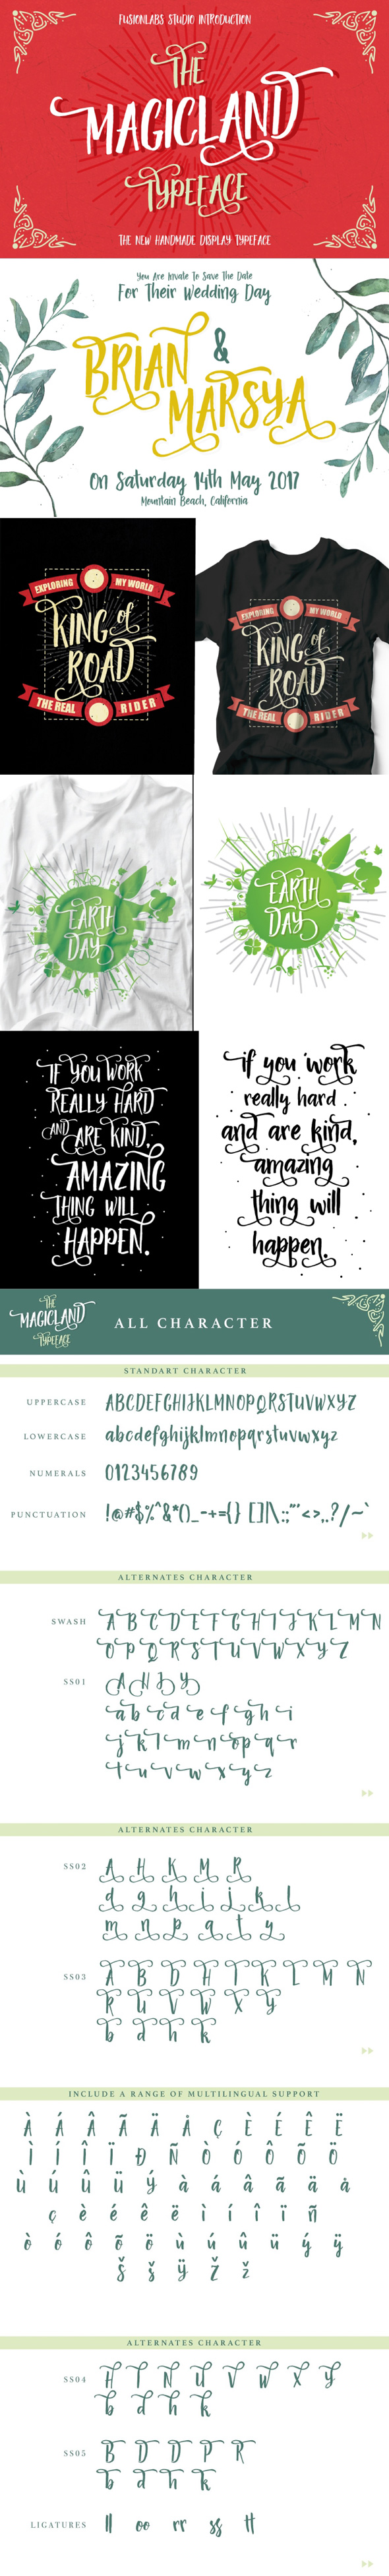 The Magicland Typeface - Handwriting Fonts